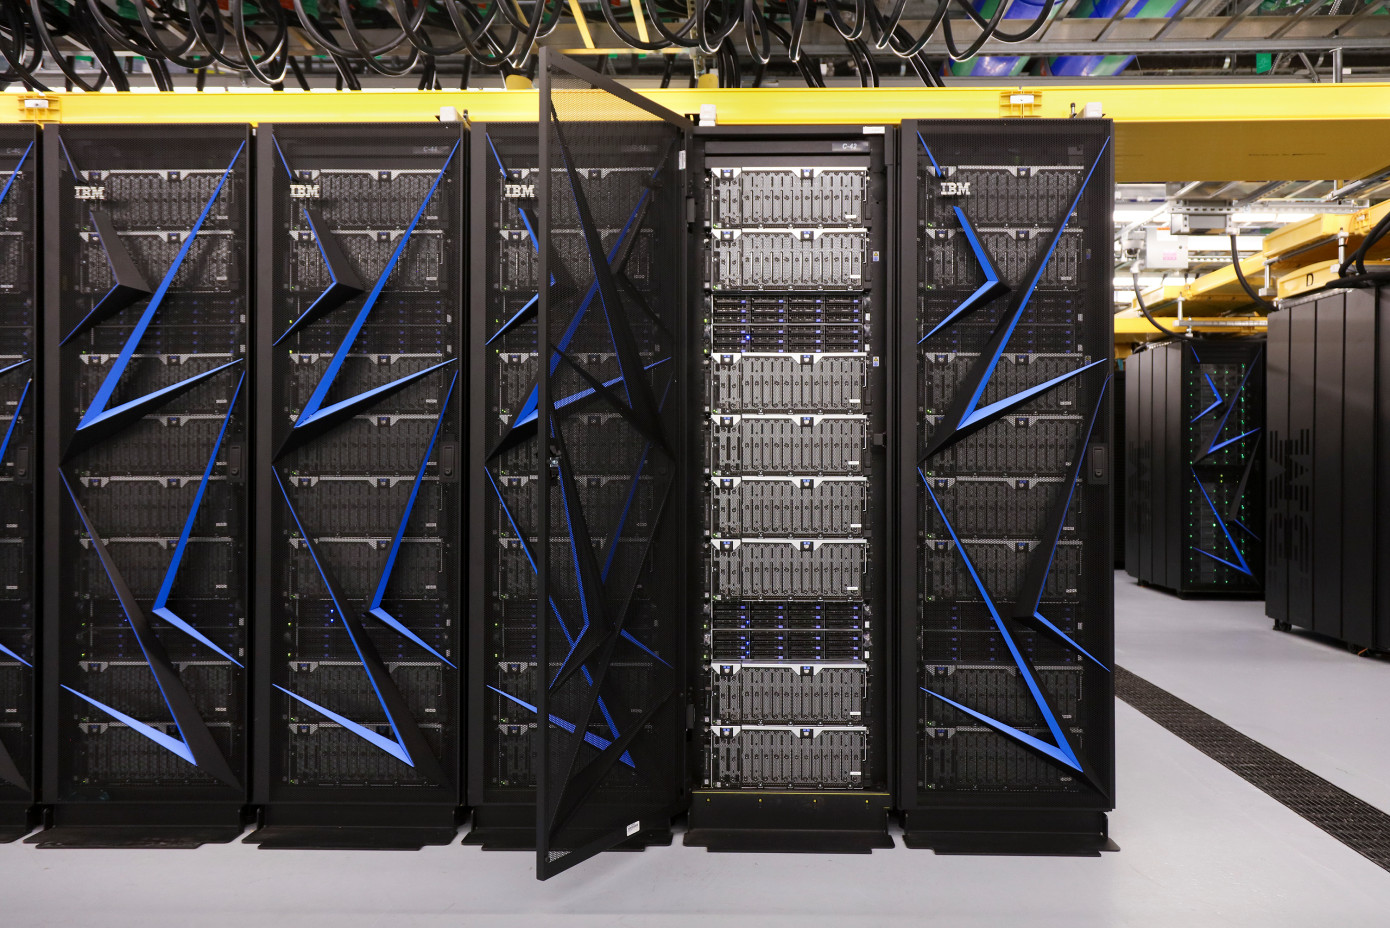 IBM unveils the fastest computer in the world